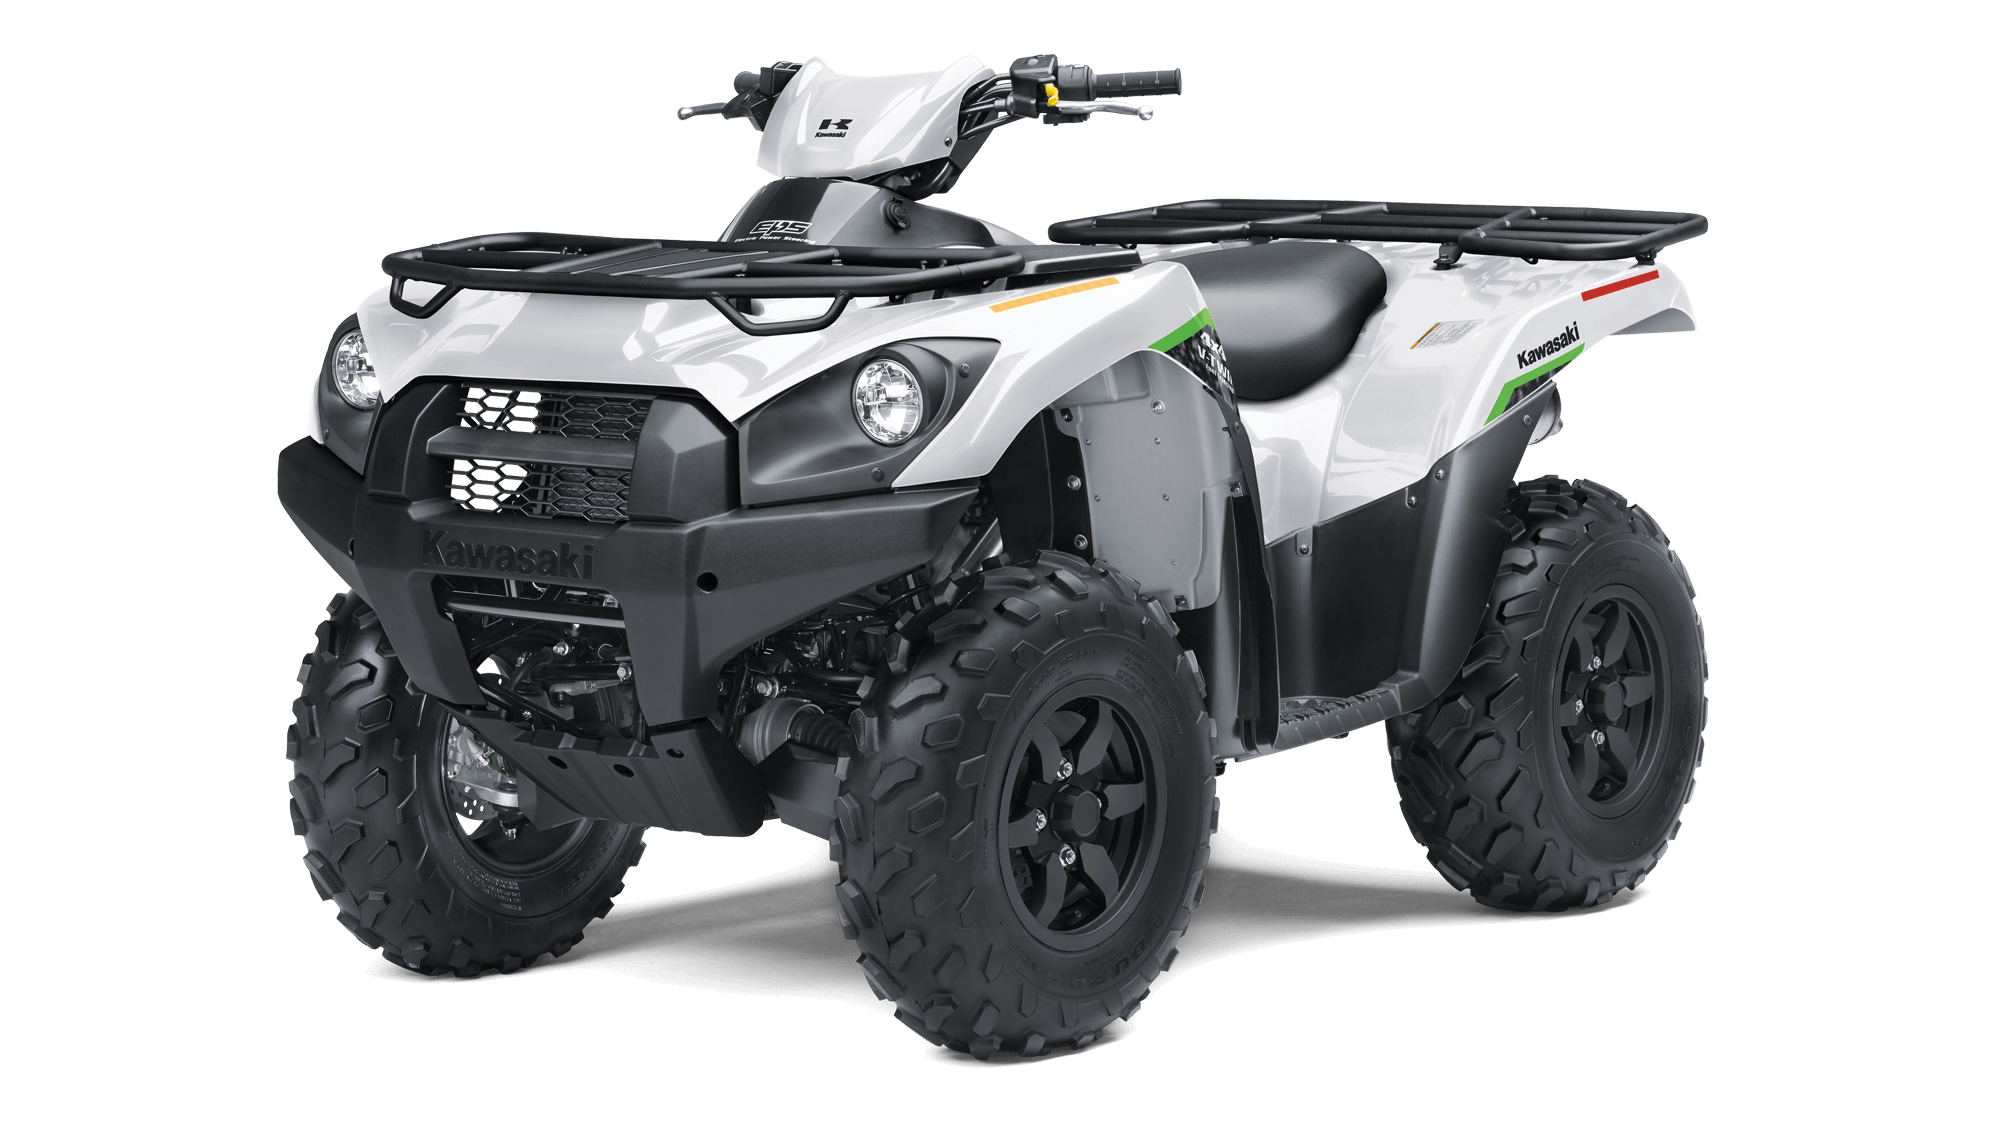 44 All New 2019 Suzuki Atv Rumors Research New for 2019 Suzuki Atv Rumors